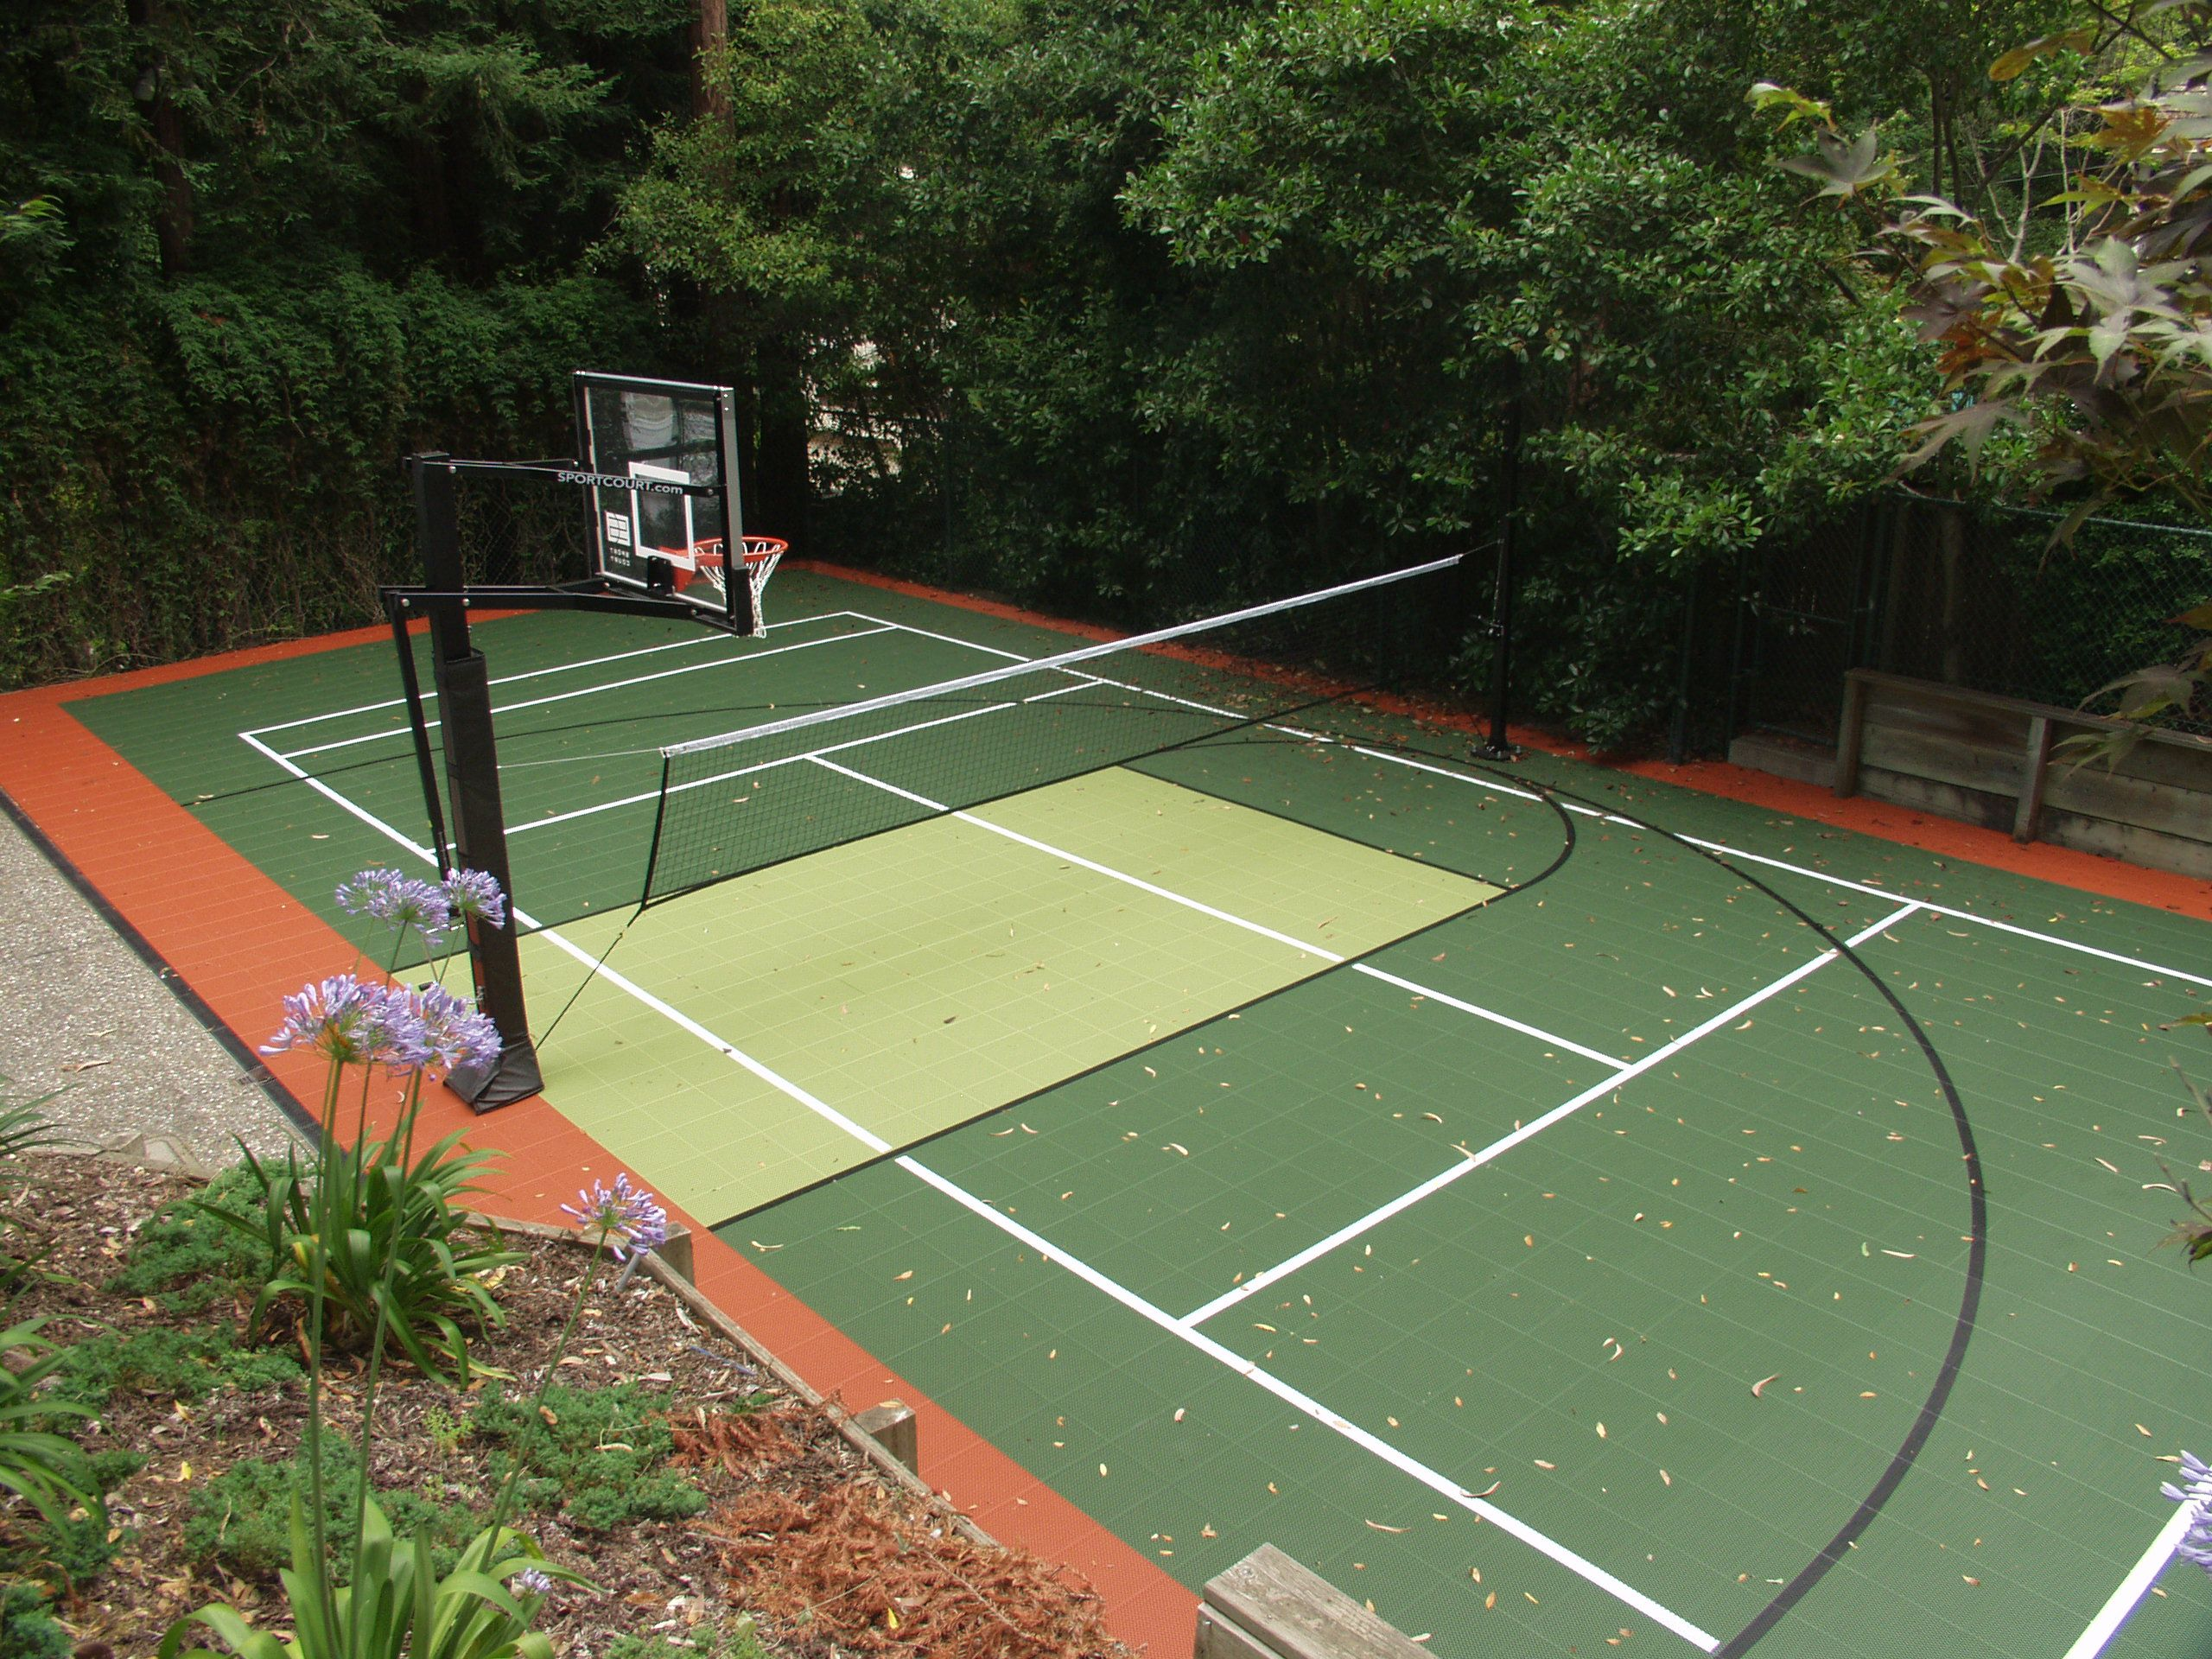 Backyard Sport Court Game Court Backyard Basketball Court Tennis Court Volleyball Pi Basketball Court Backyard Home Basketball Court Tennis Court Backyard